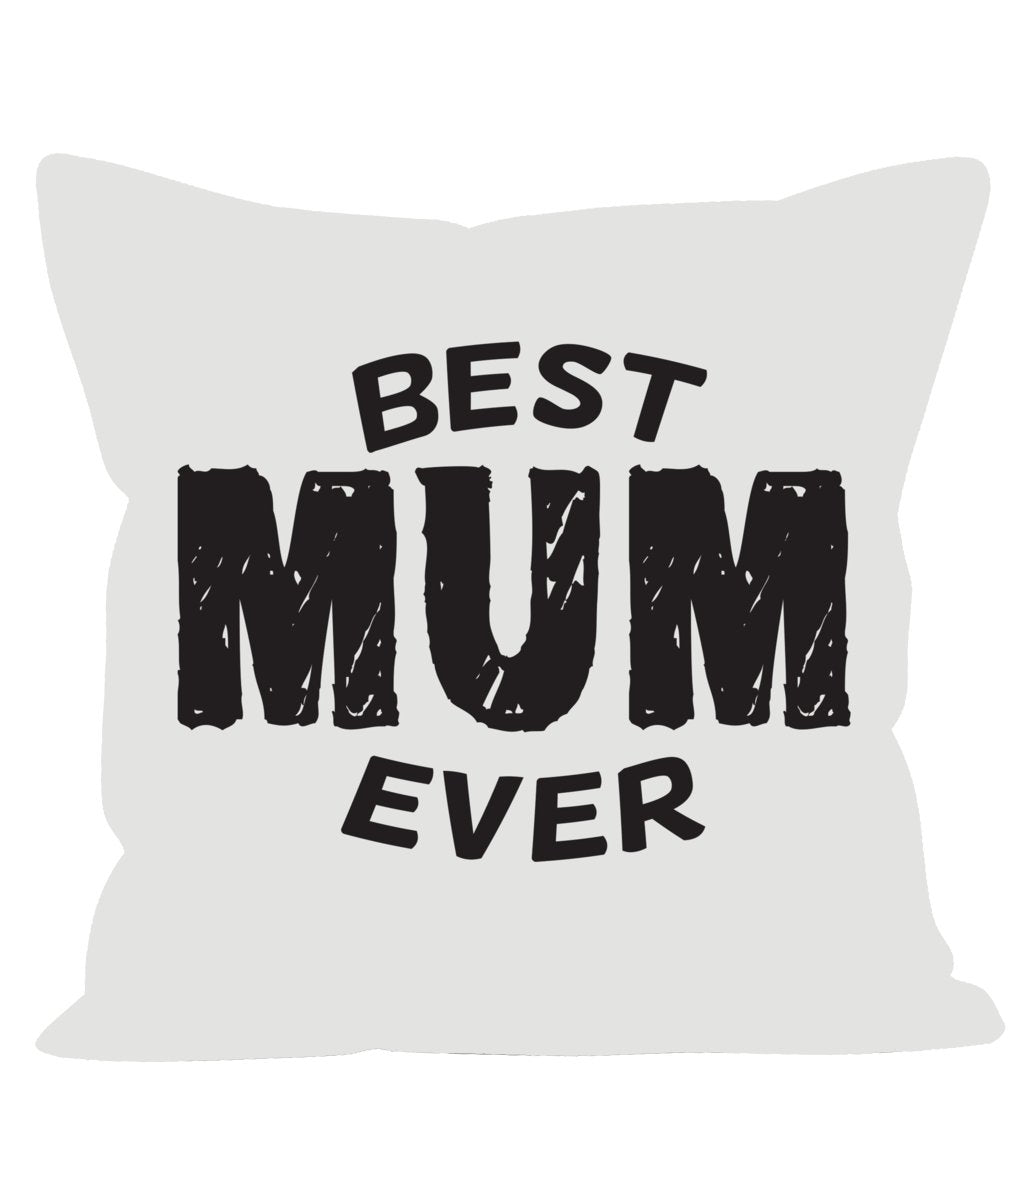 Best Mum Ever Sofa Cushions - The Gift Project